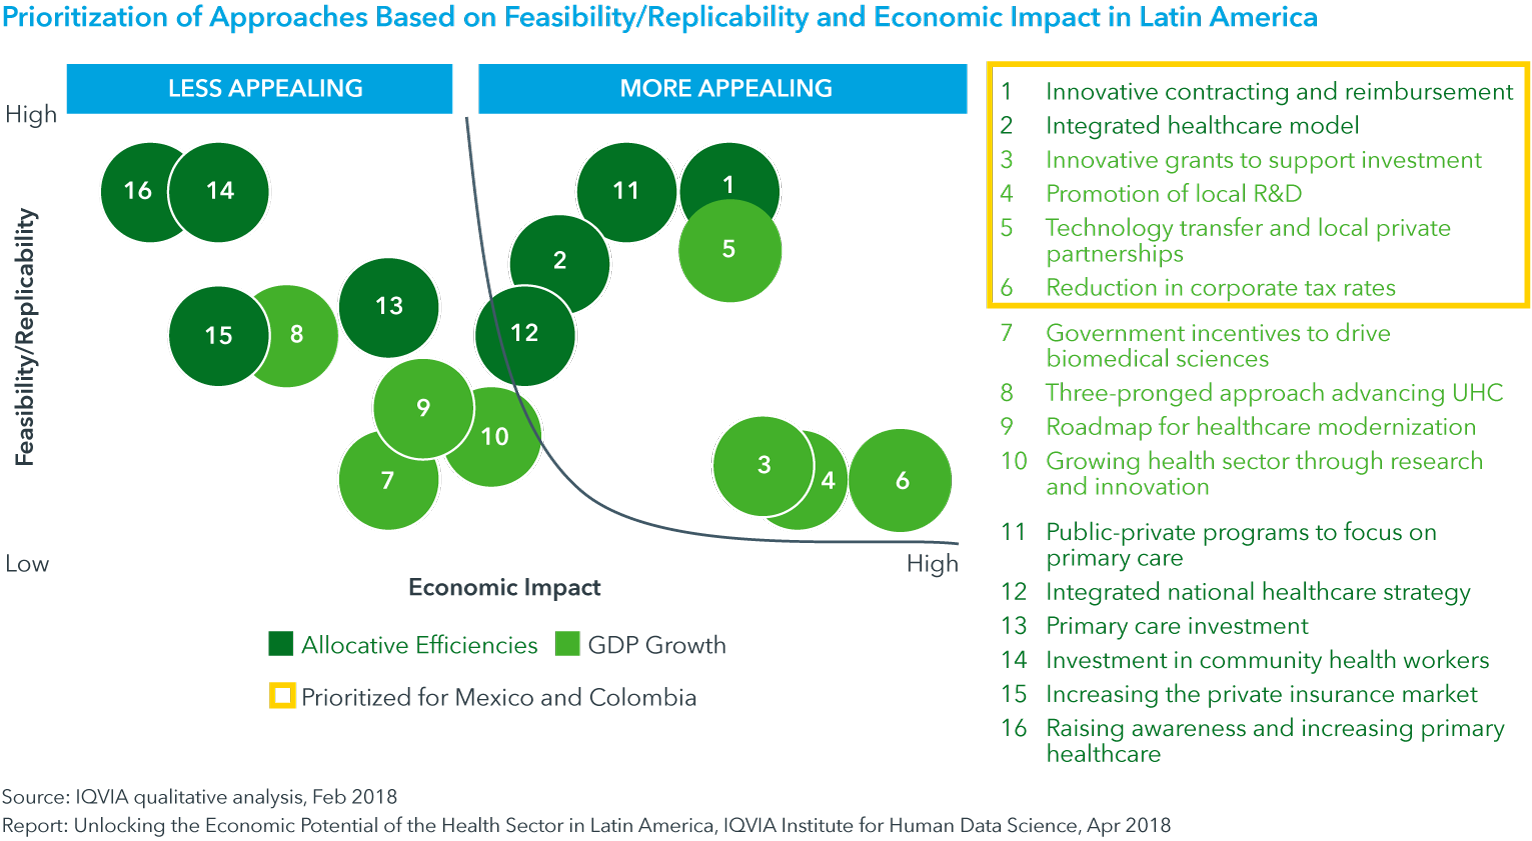 Chart 6: Prioritization of Approaches Based on Feasibility/Replicability and Economic Impact in Latin America